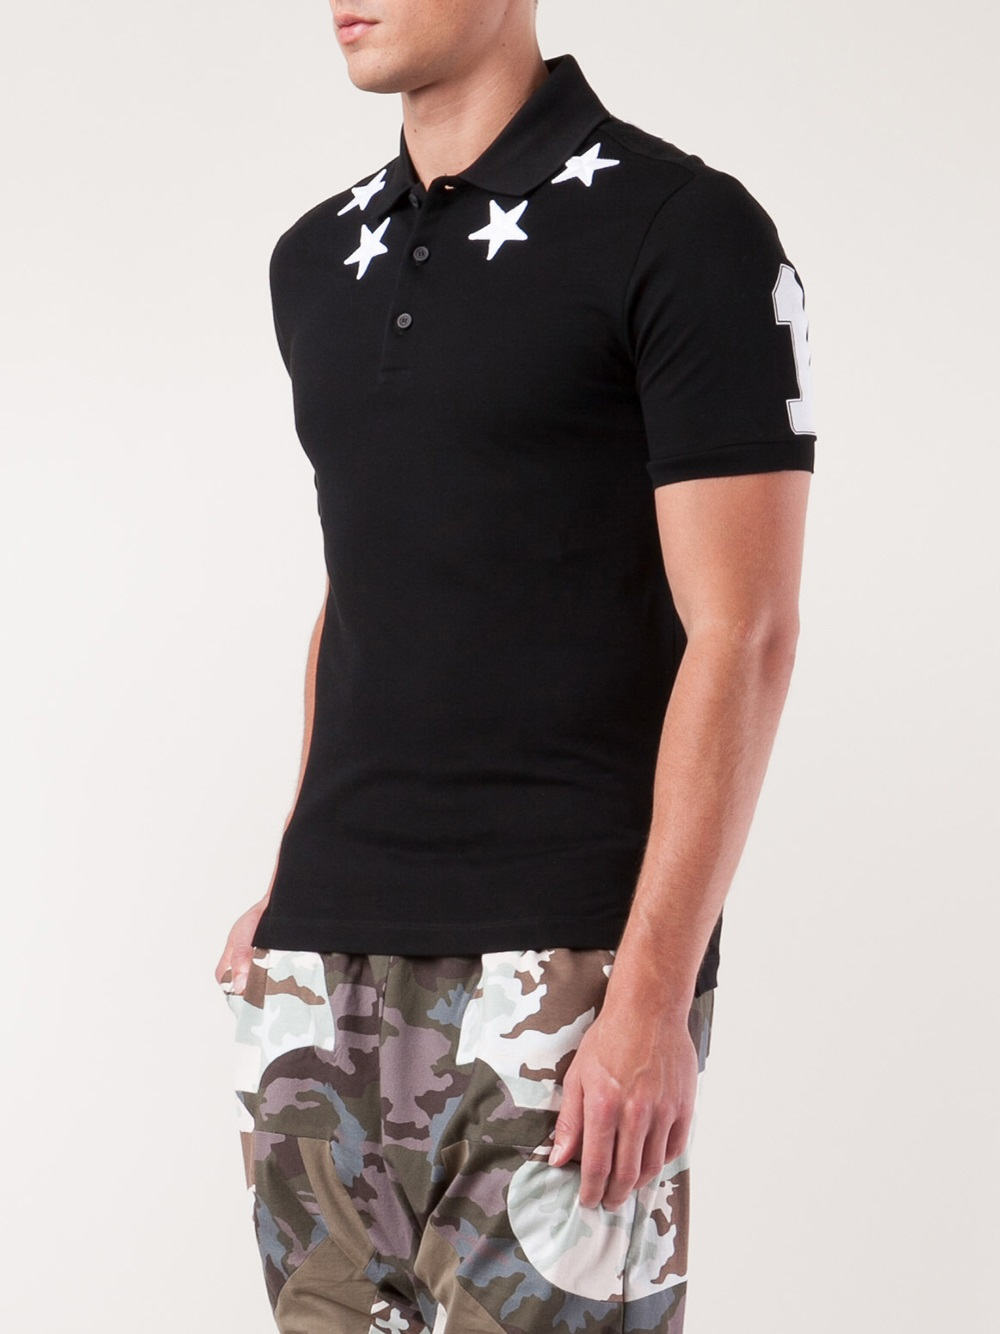 Givenchy Cuban Fit Polo Shirt In Black For Men Lyst